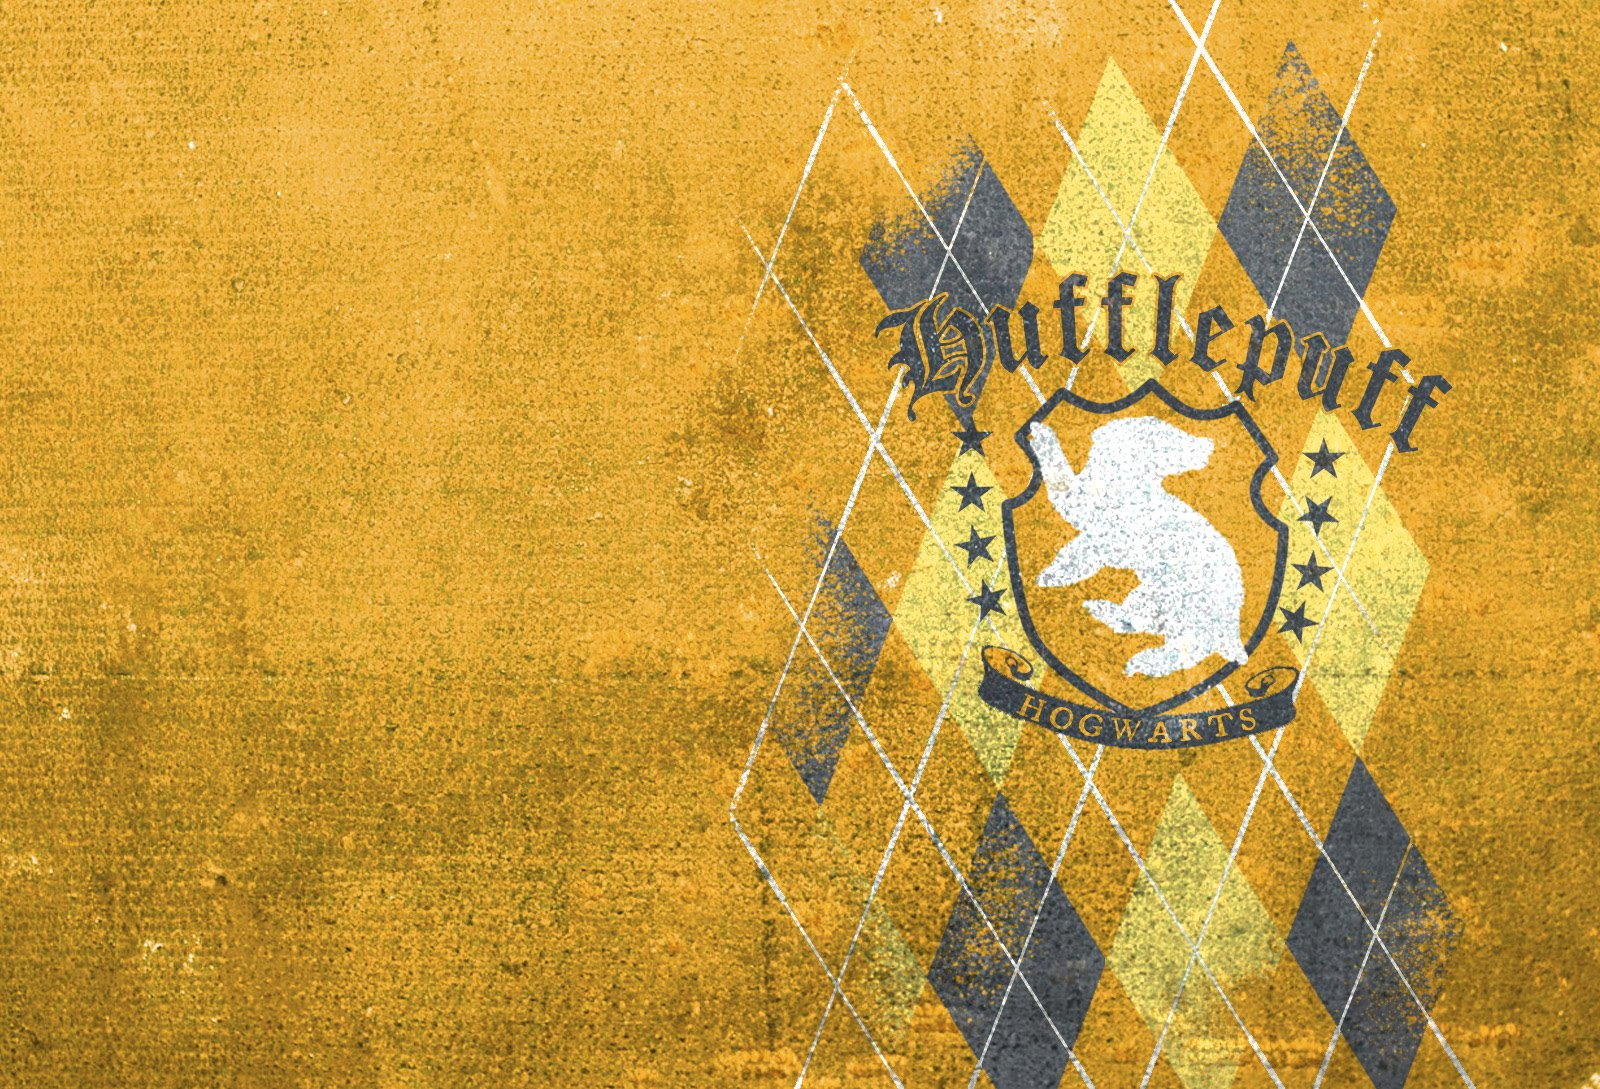 Harry Potter Hufflepuff Background 285016 Hd Wallpaper